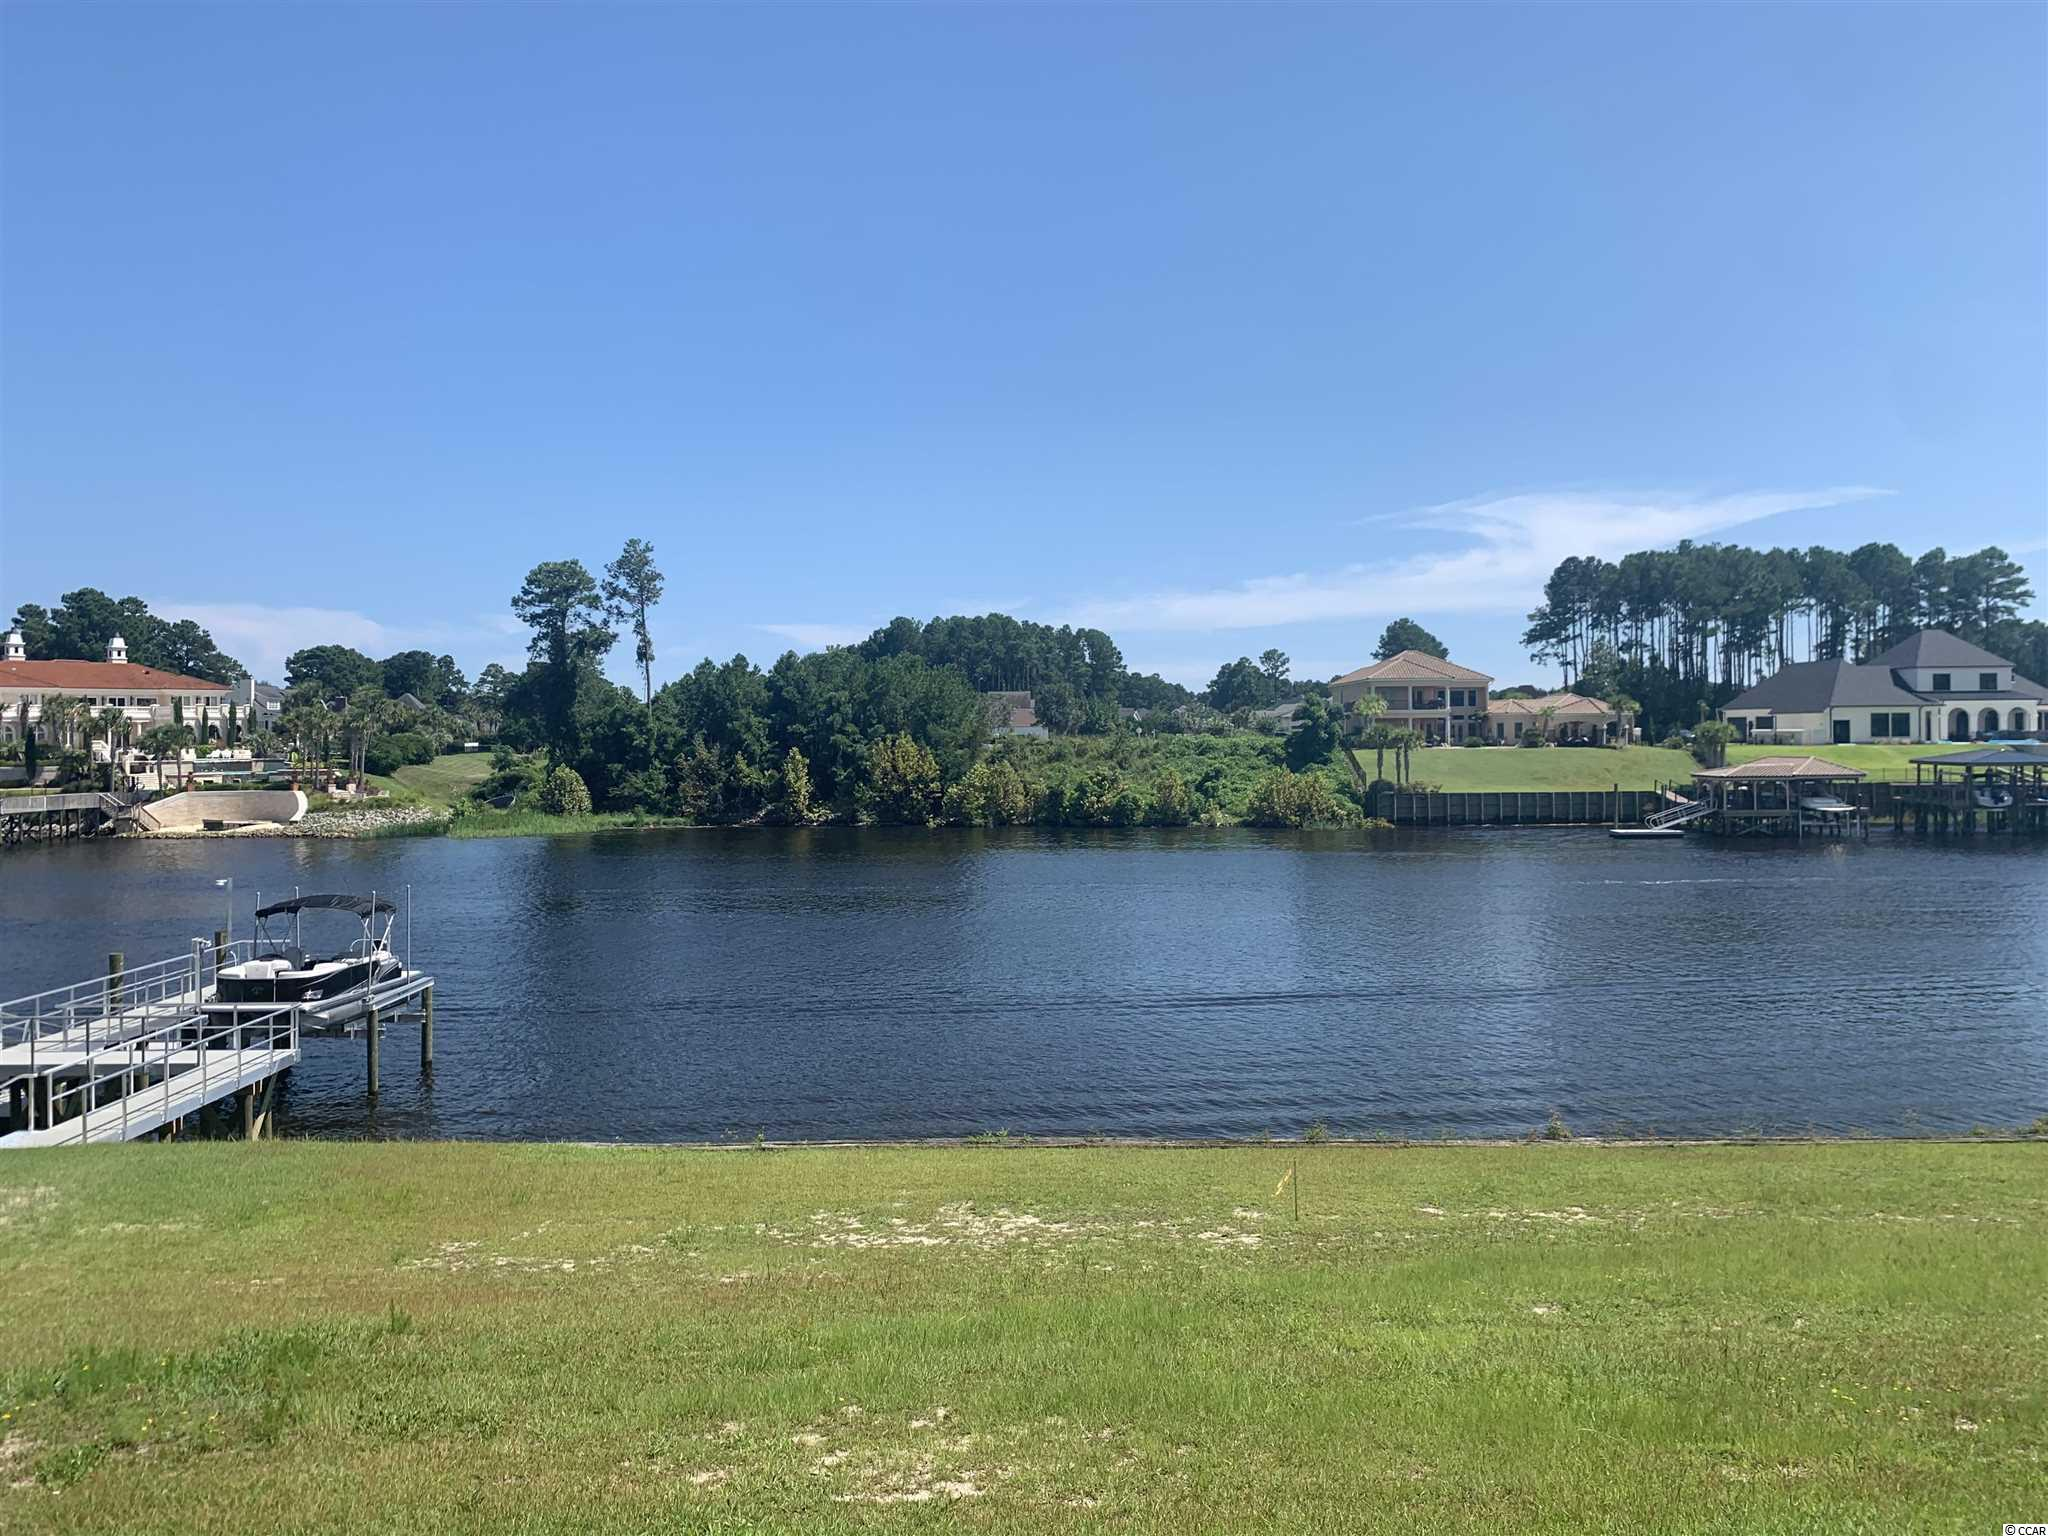 Start living your dream today. This beautiful large waterway lot that is ready for you to build your dream house. Choose your own builder and no time frame to build.   This lot is located in the highly desired gated Carolina Waterway Plantation. Resort style amenities include: furnished clubhouse with kitchen and banquet room, outside grill, pool, kids playground, gazebo, tennis court, walking trails, boat ramp, storage for RV and boats.   Carolina Forest area offers award-winning schools, grocery stores, medical facilities, recreational  centers, library ,religious centers, bike park.   Don't hesitate!! Start experiencing and relaxing natures beauty with extraordinary sunrises and water views in Carolina Waterway Plantation.